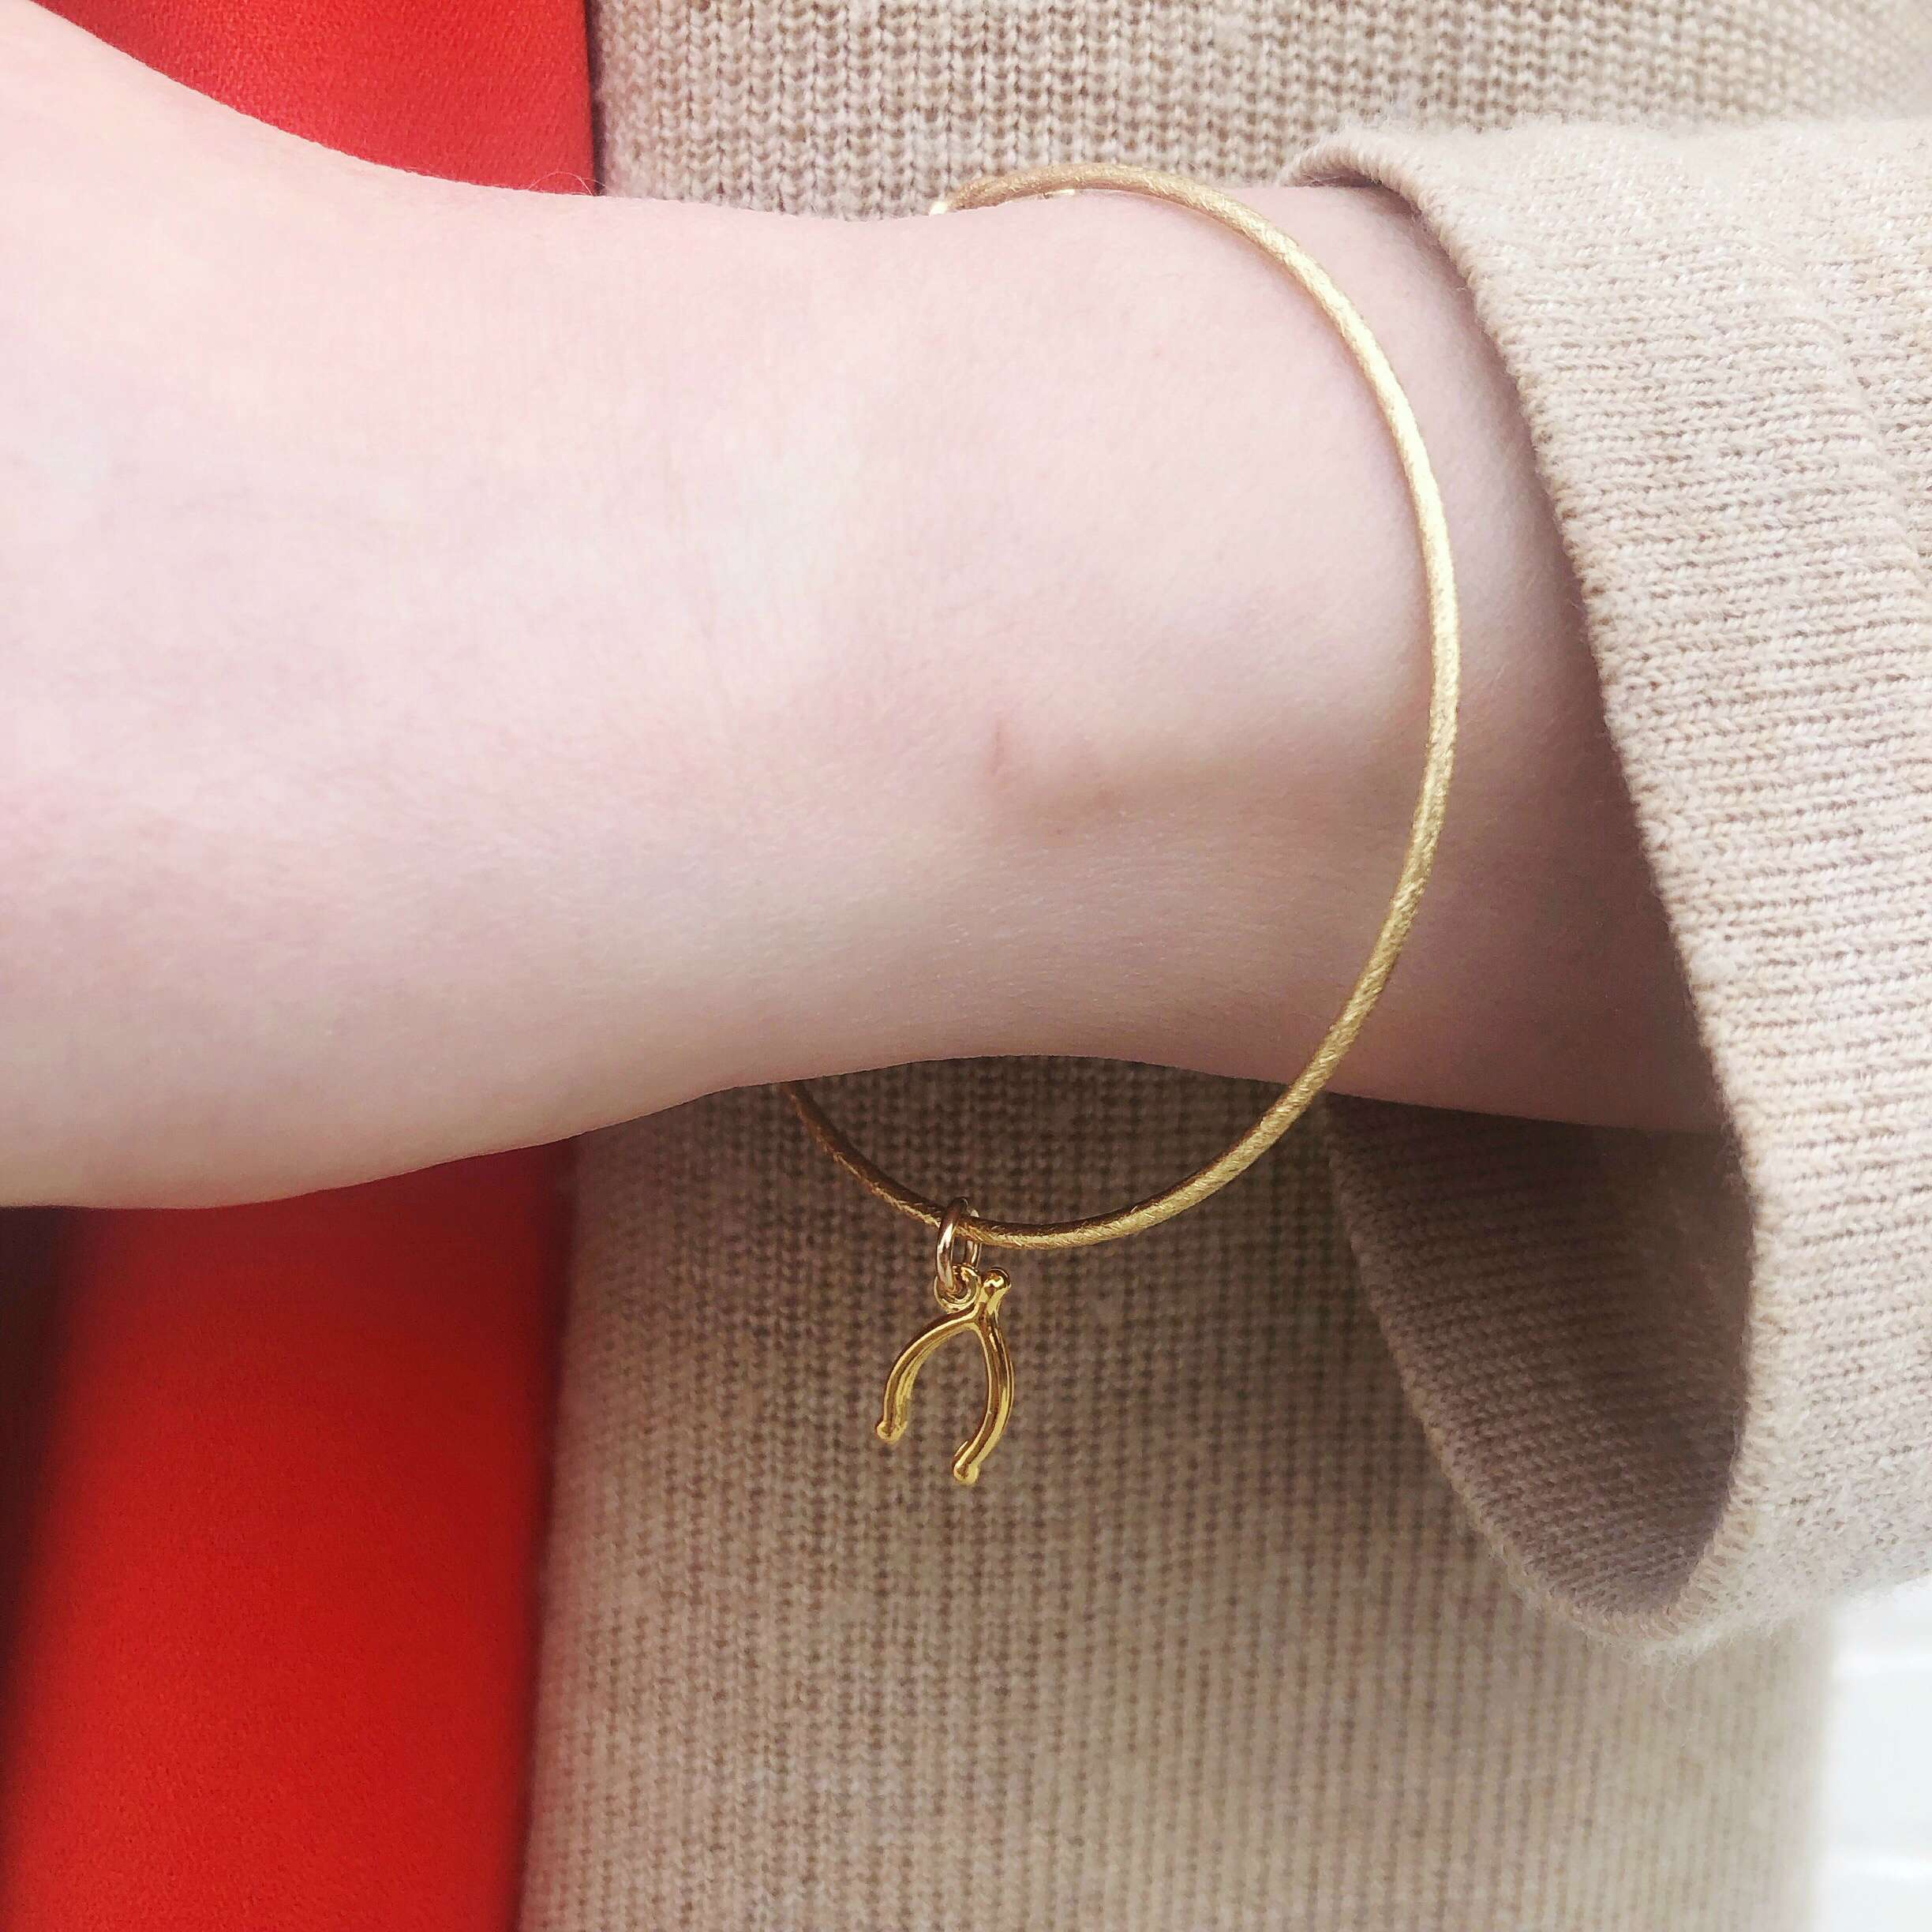 Moon and Lola - Wishbone Charm on a sleek Nora Bangle Bracelet